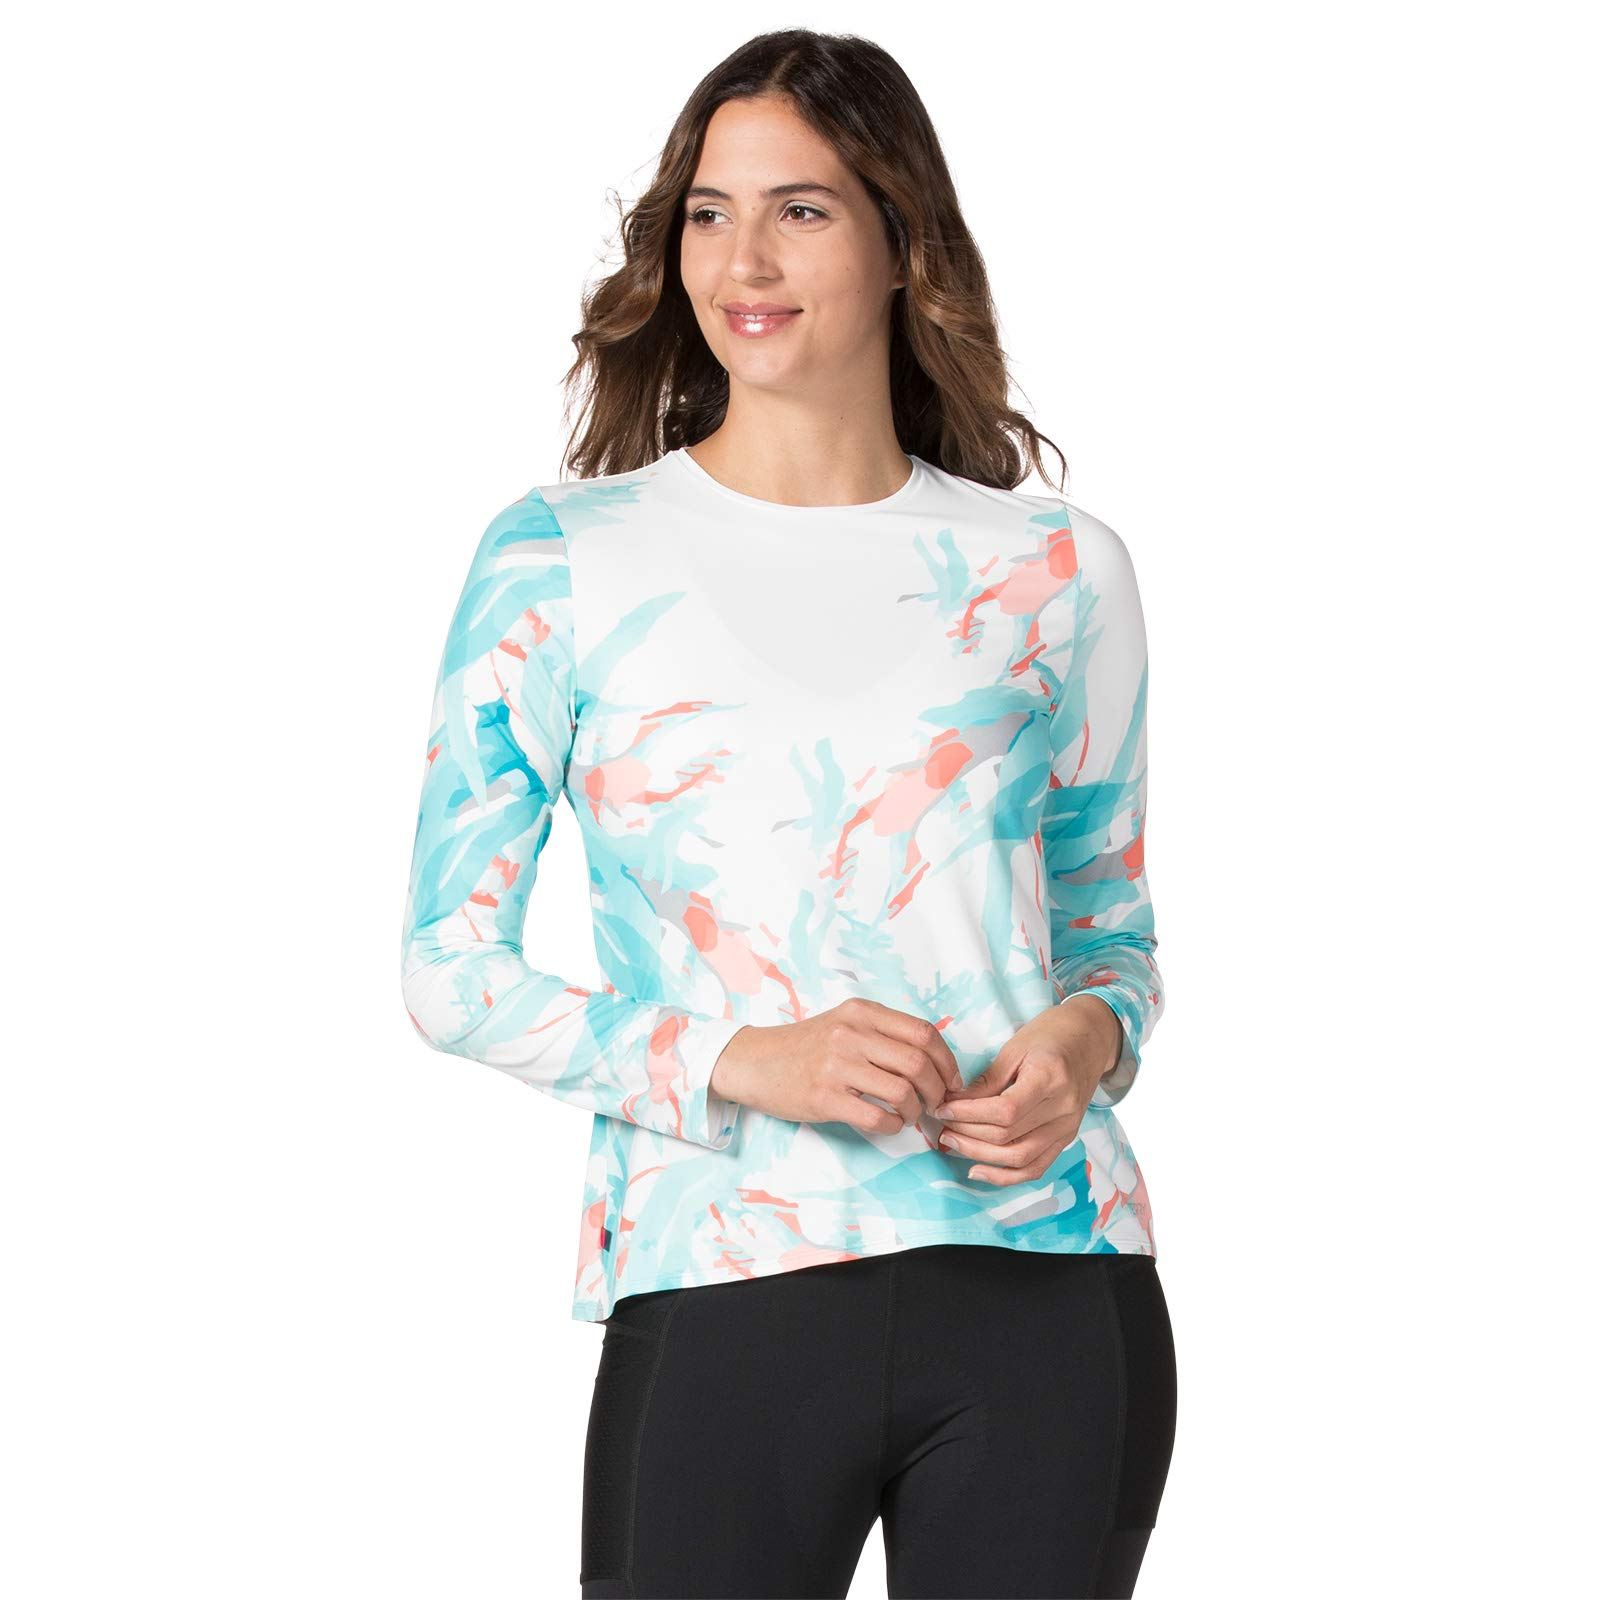 Terry Soleil Flow Long Sleeve Cycling Top for Women - Lightweight Ladies Athletic Top with UPF 50+ Sun Protection- Watercolor - X Small by Terry